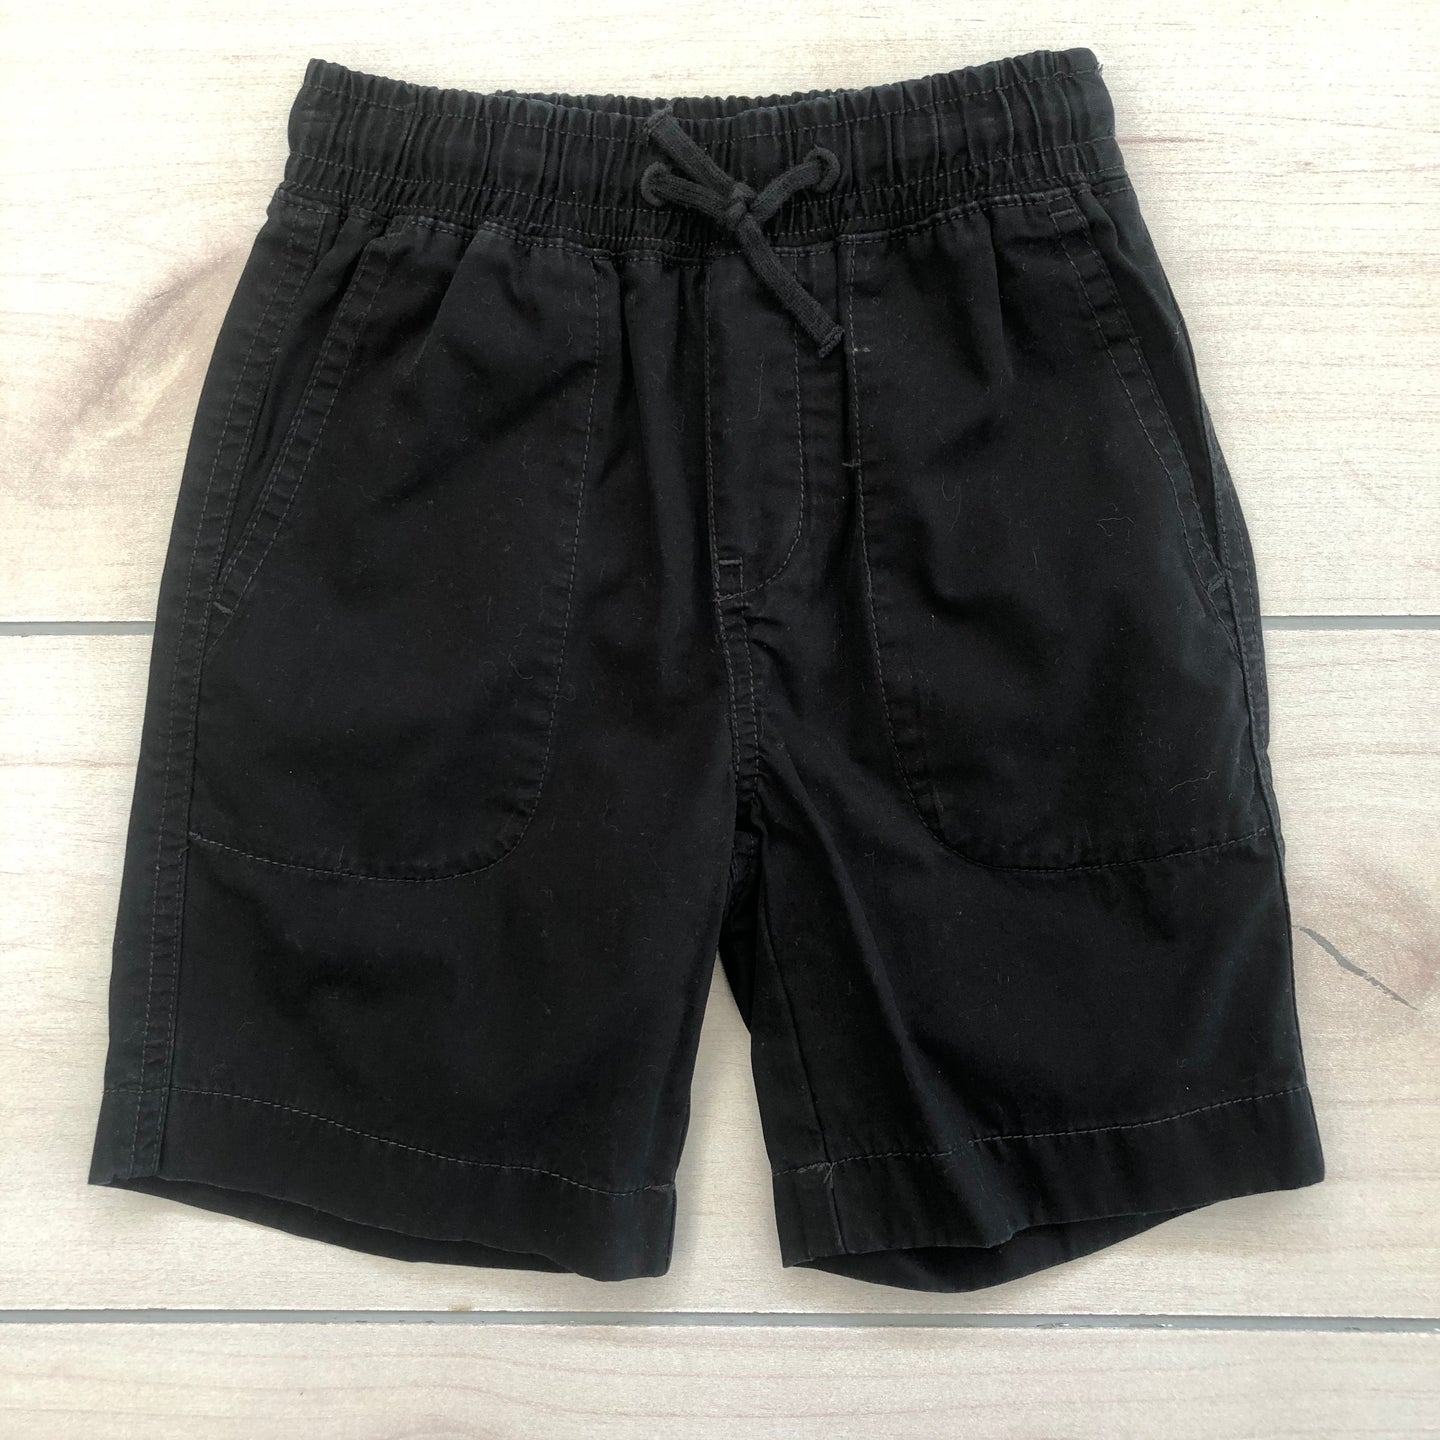 Crewcuts Black Pull Up Shorts Size 5